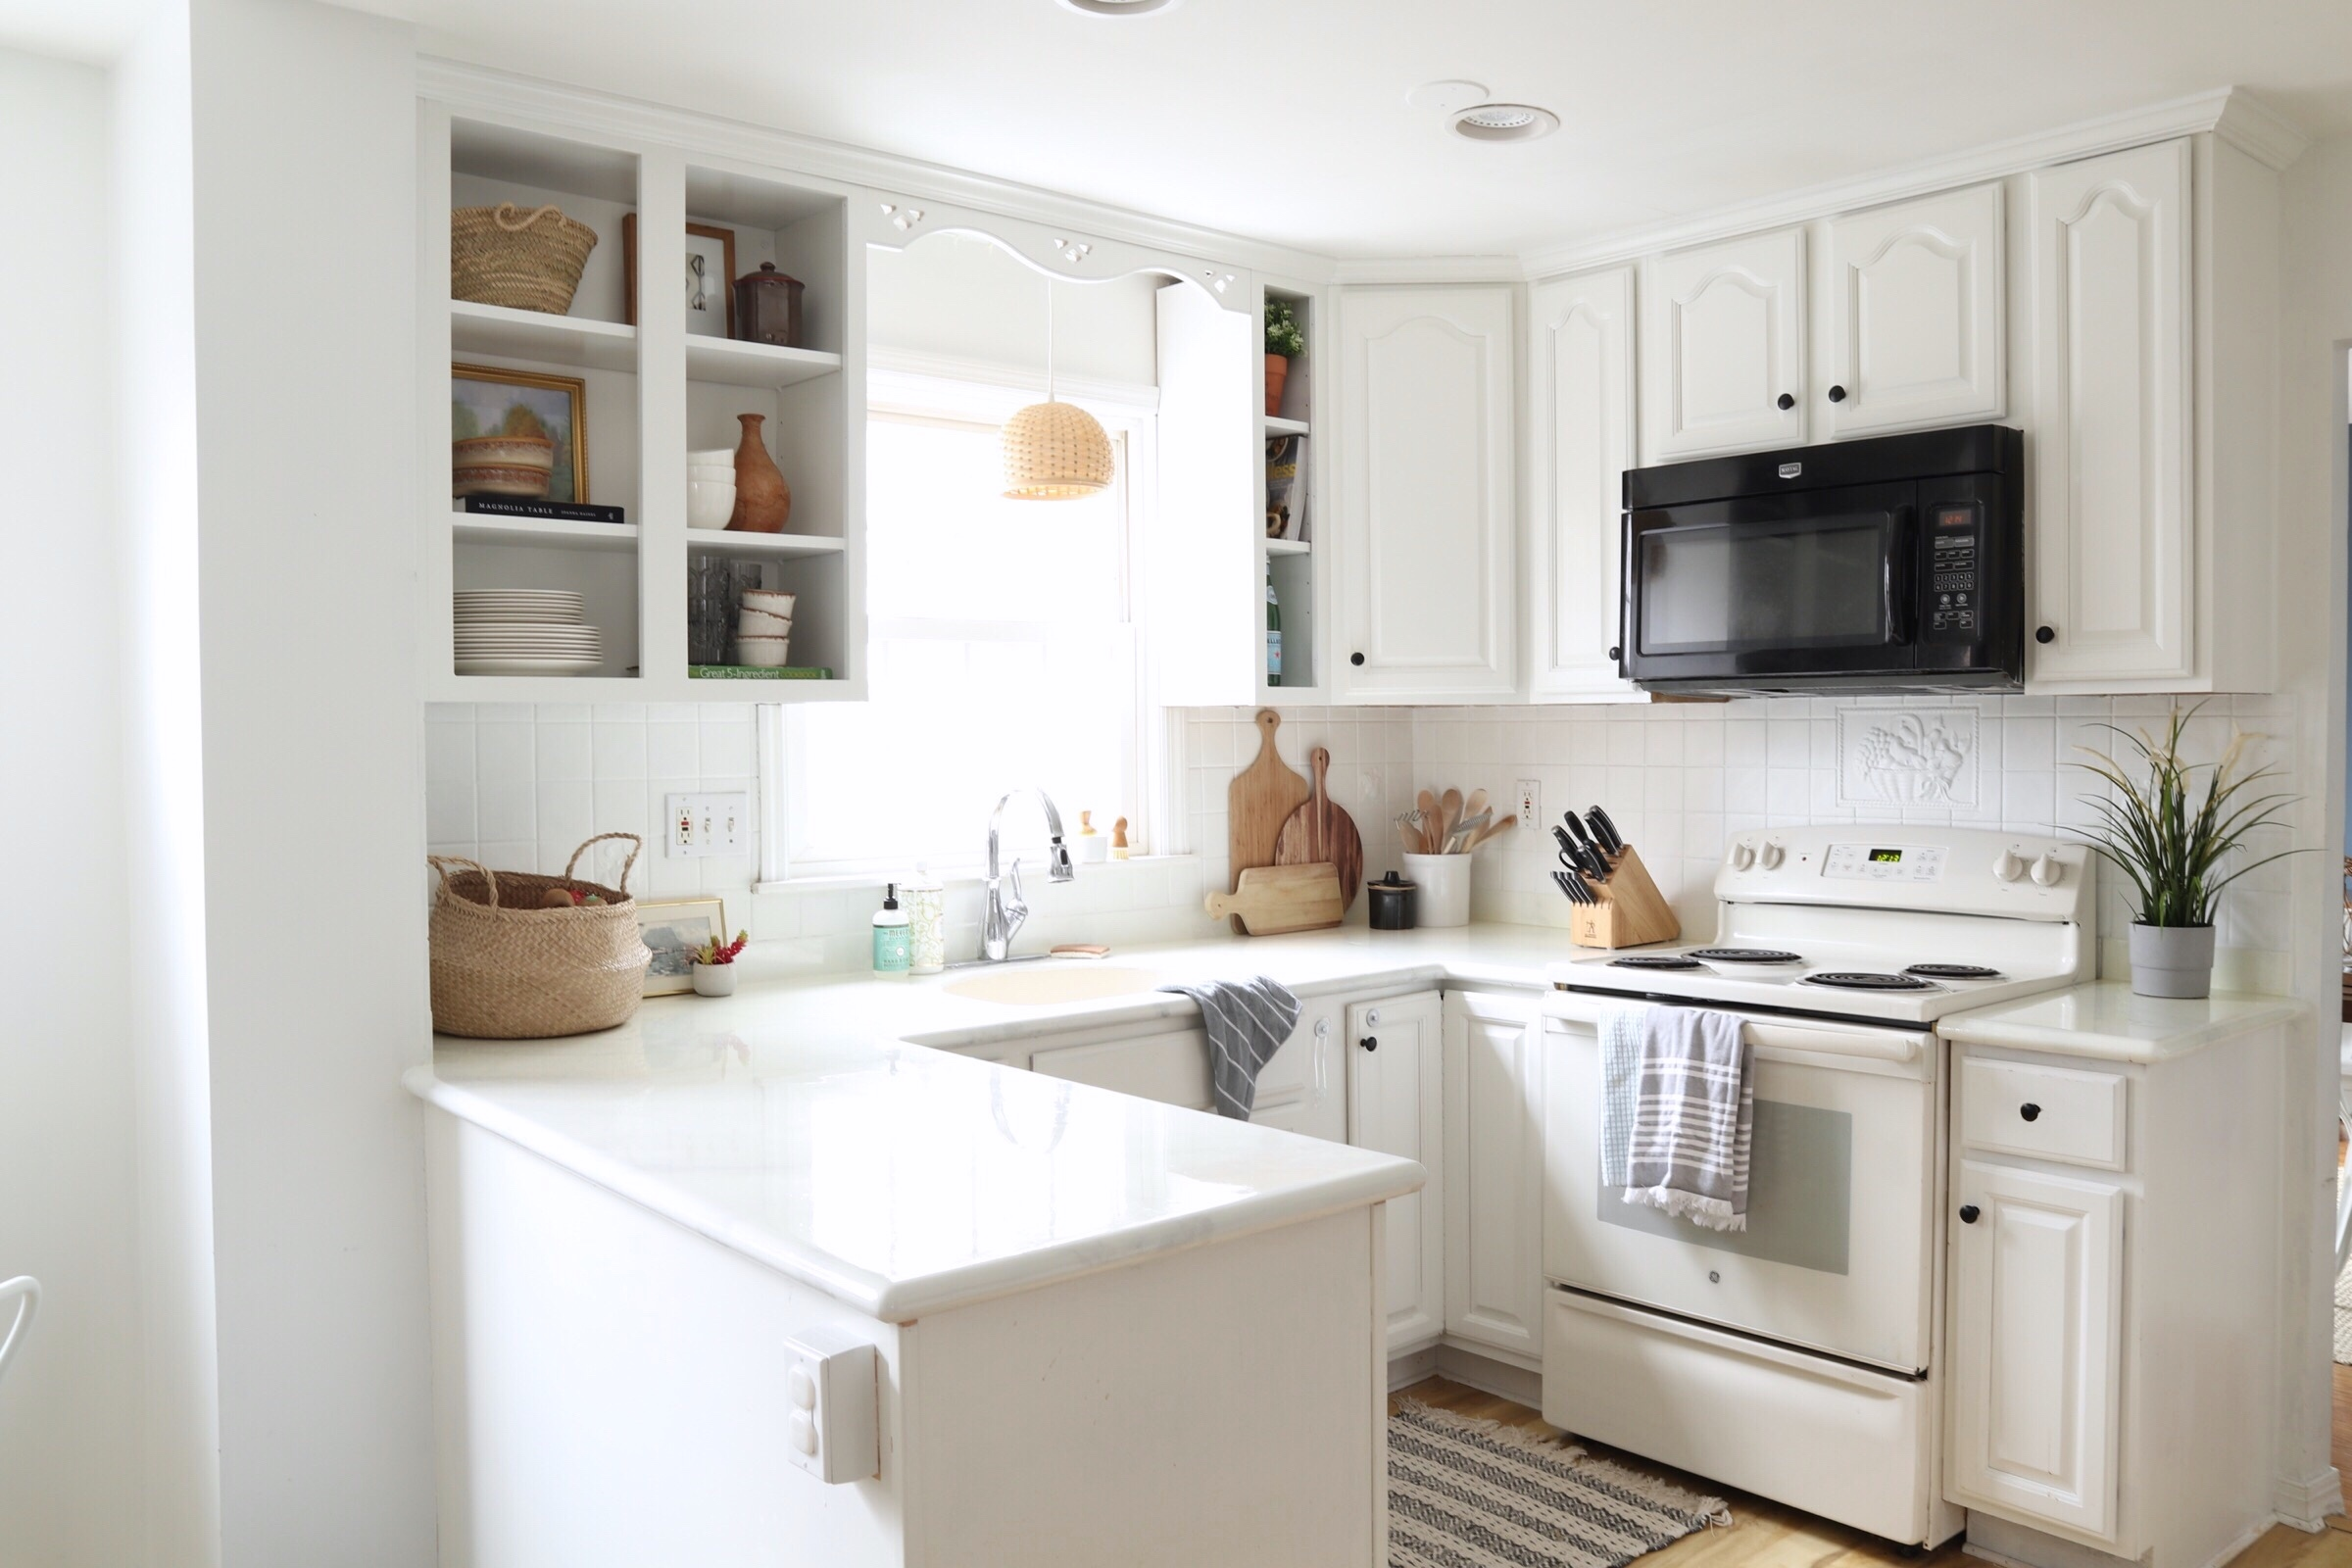 Kitchen-02-white-open-shelving.jpg